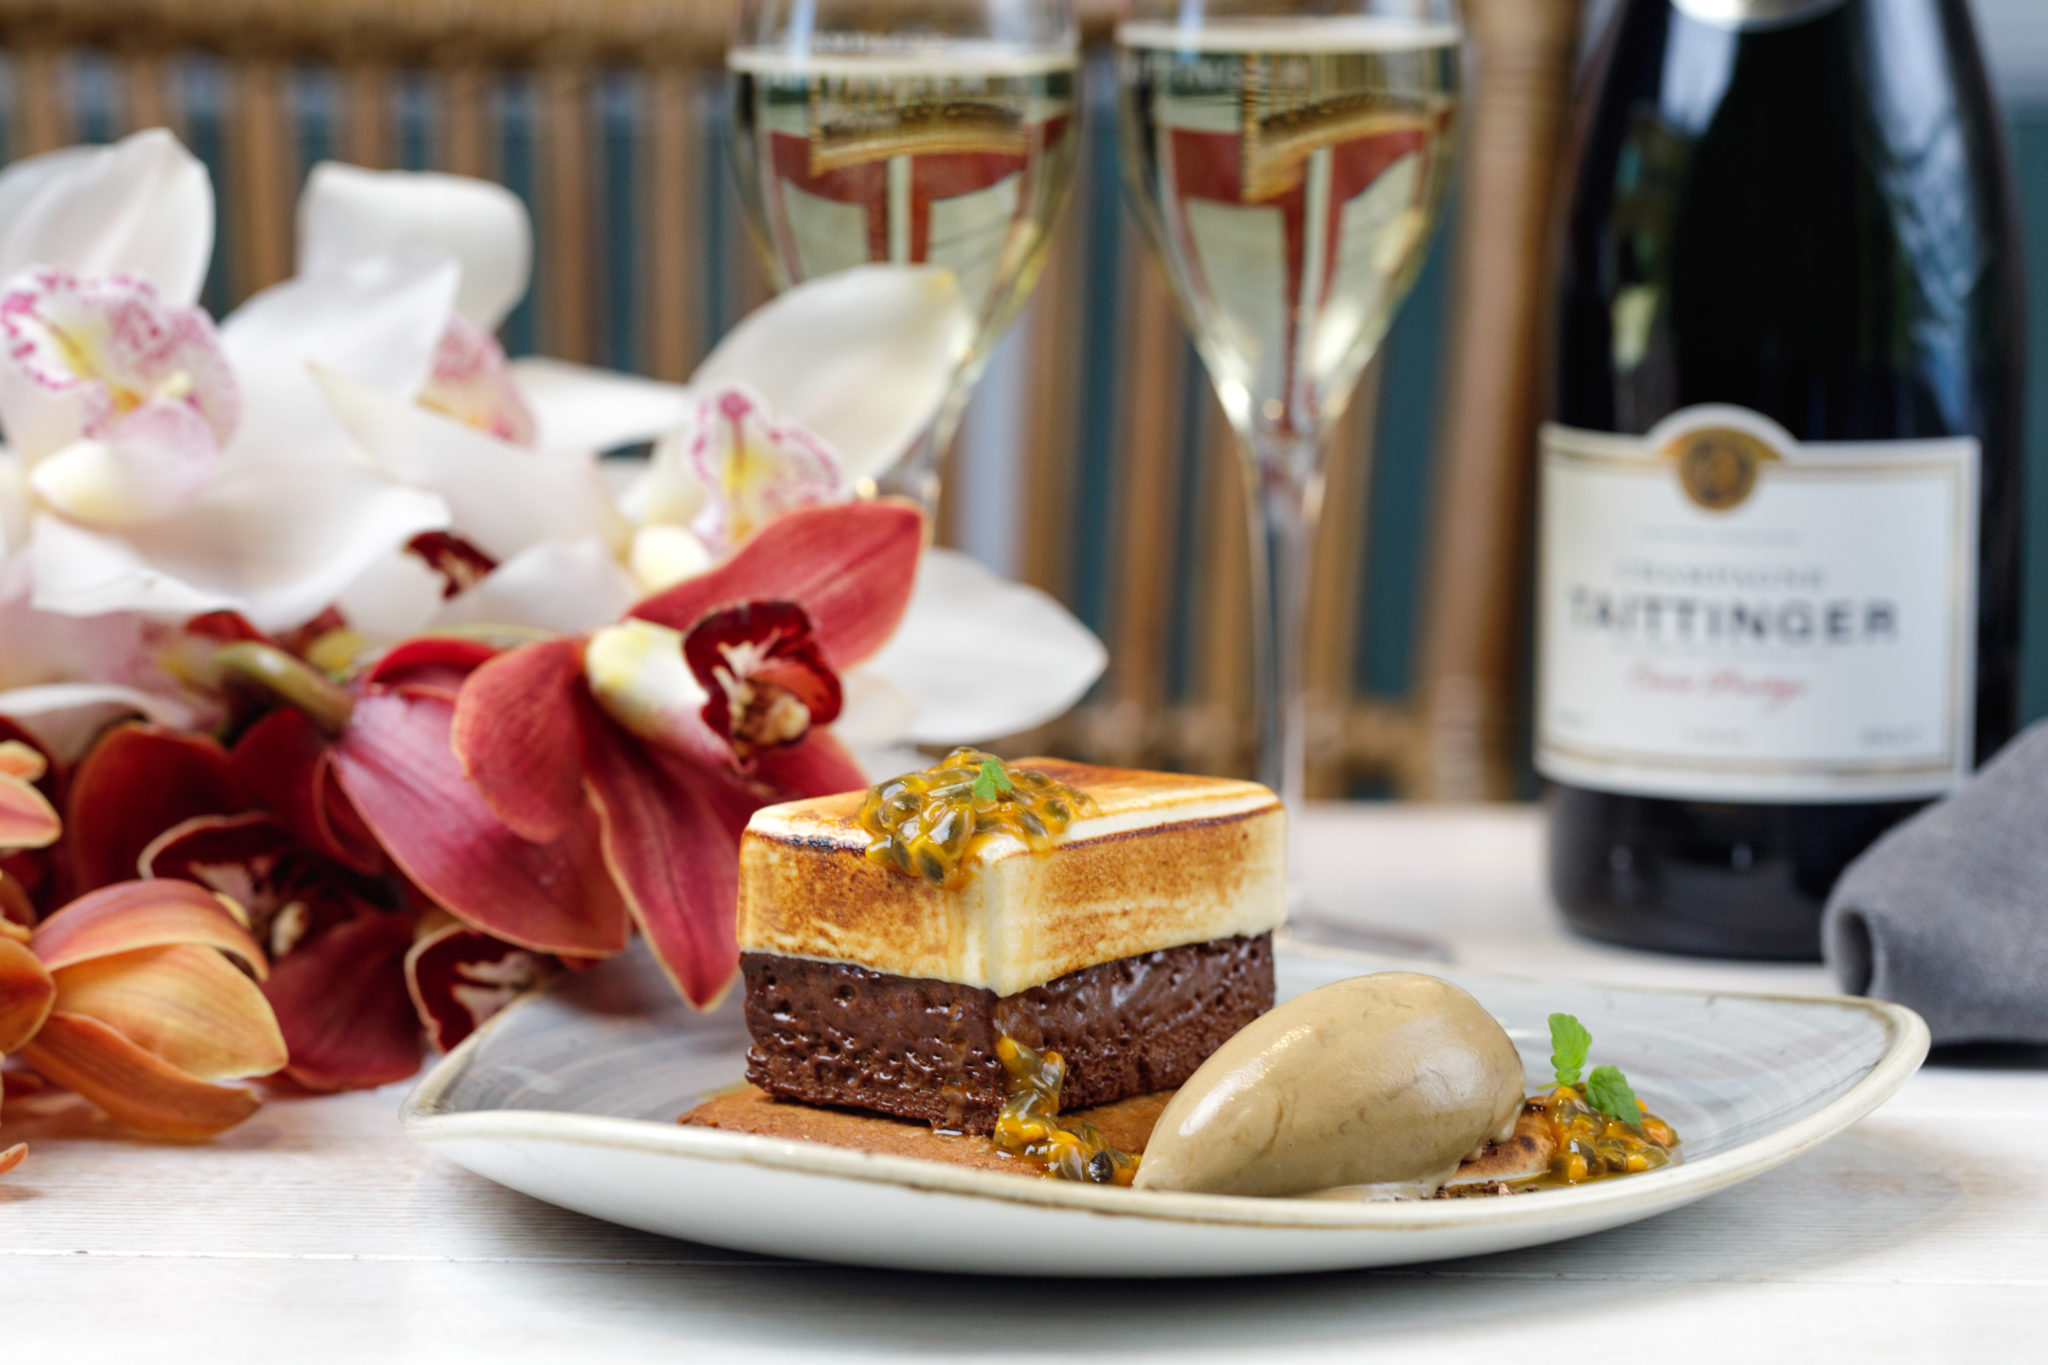 NOLA Champagne Taittinger Smoked Meats Seafood Lunch Sydney